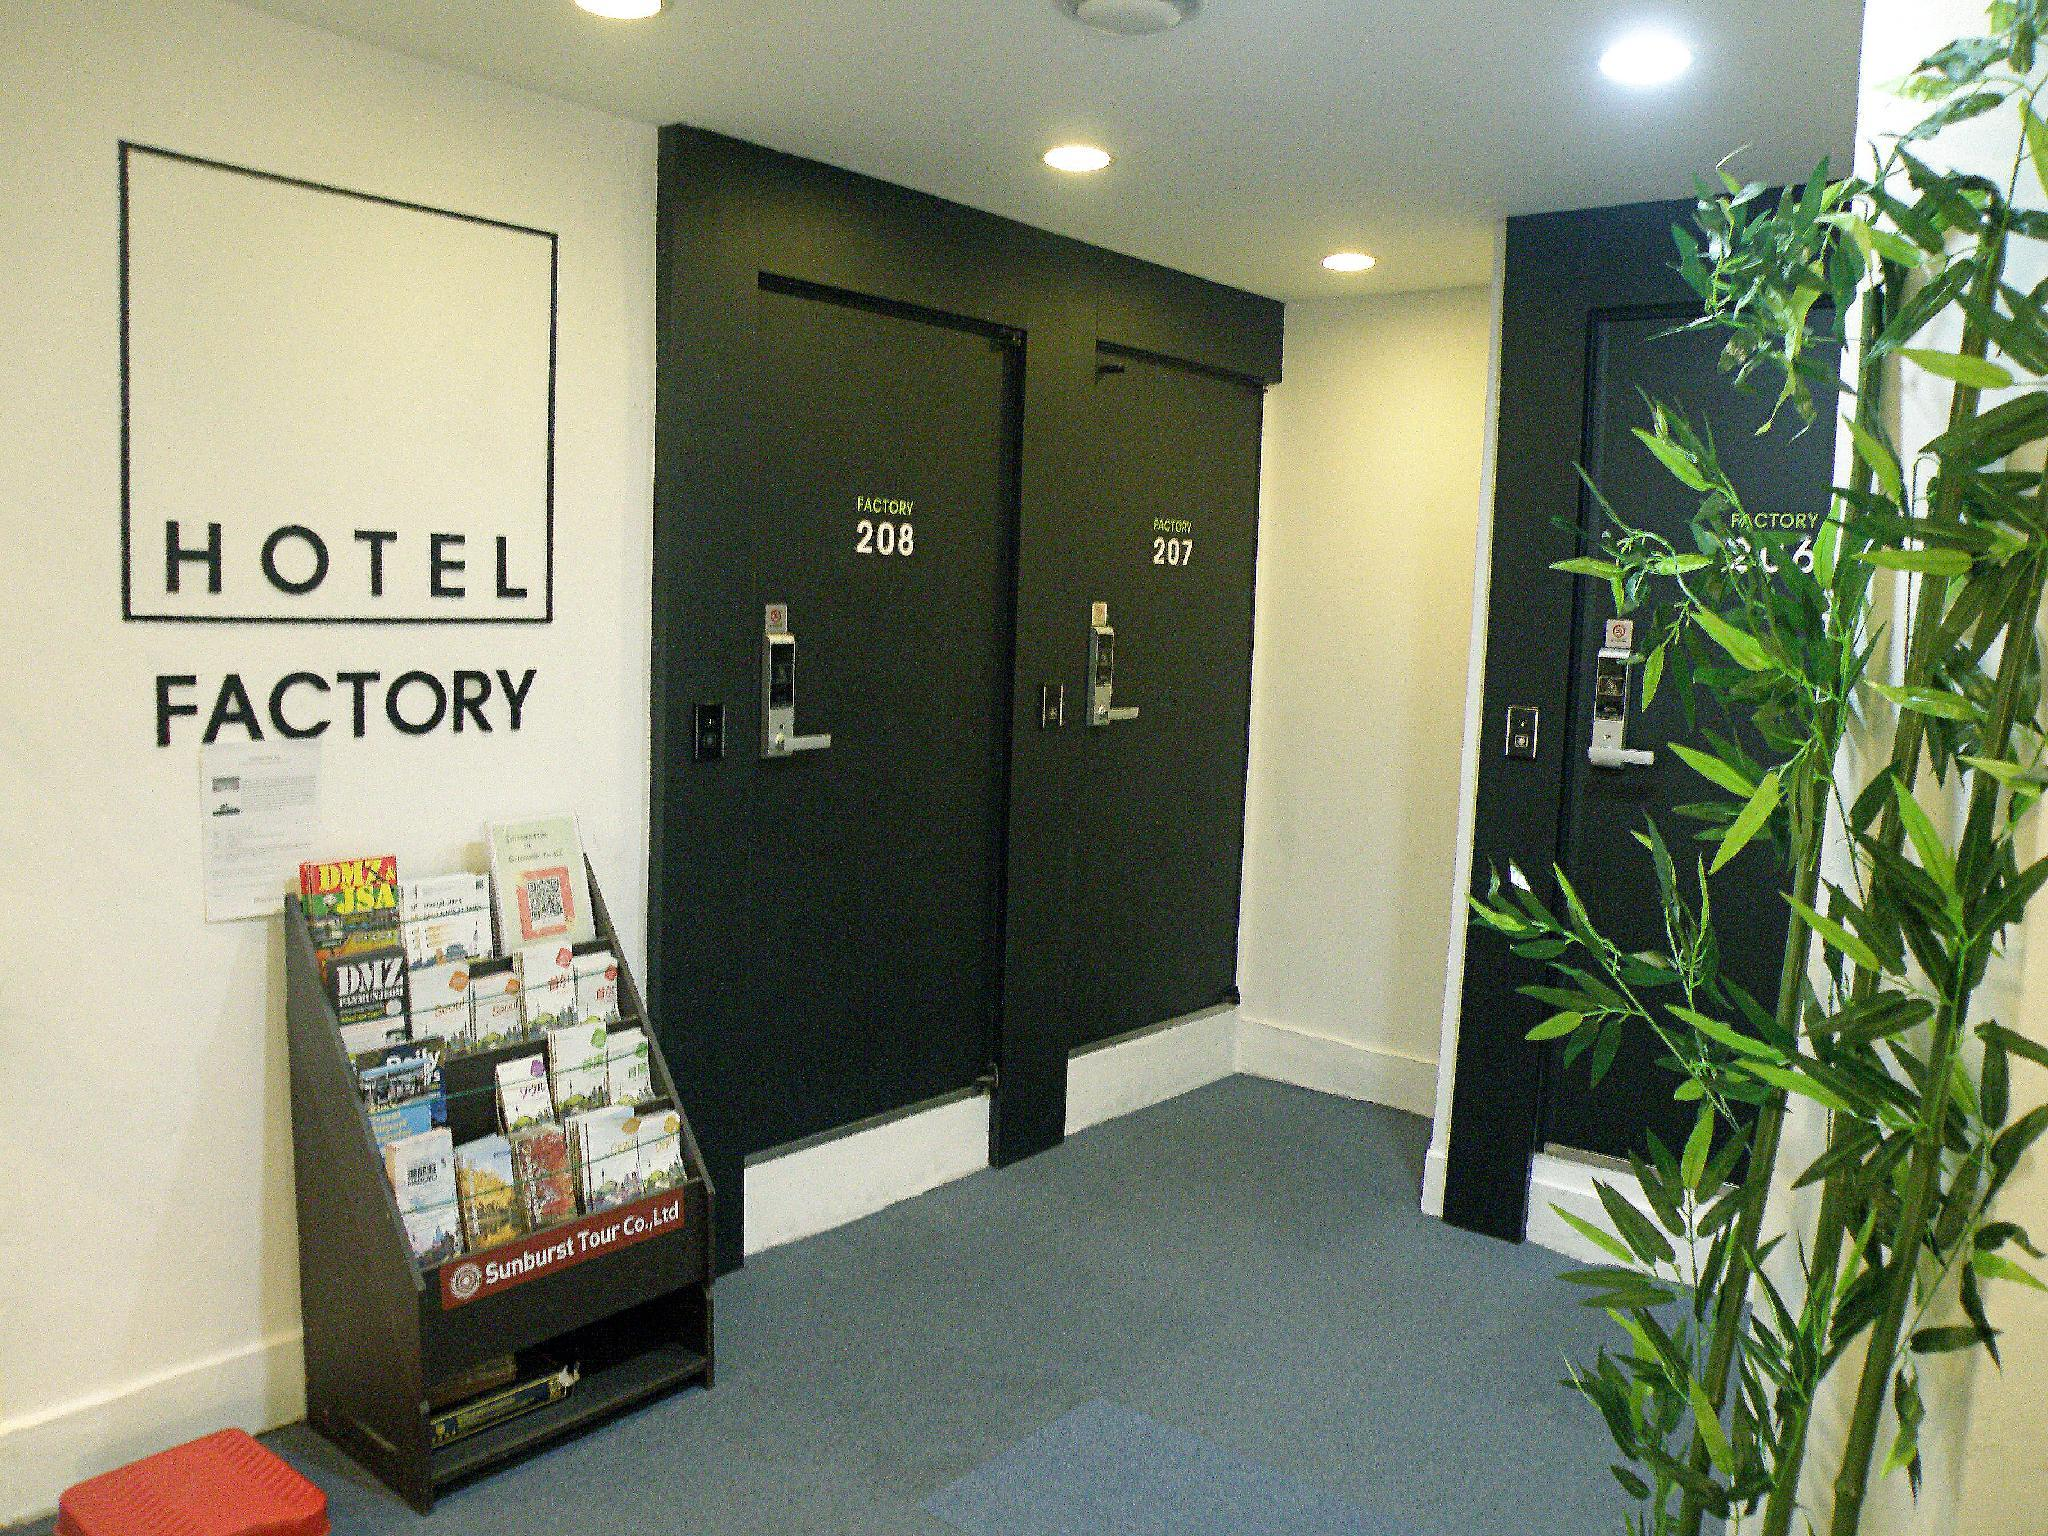 Hotel Factory